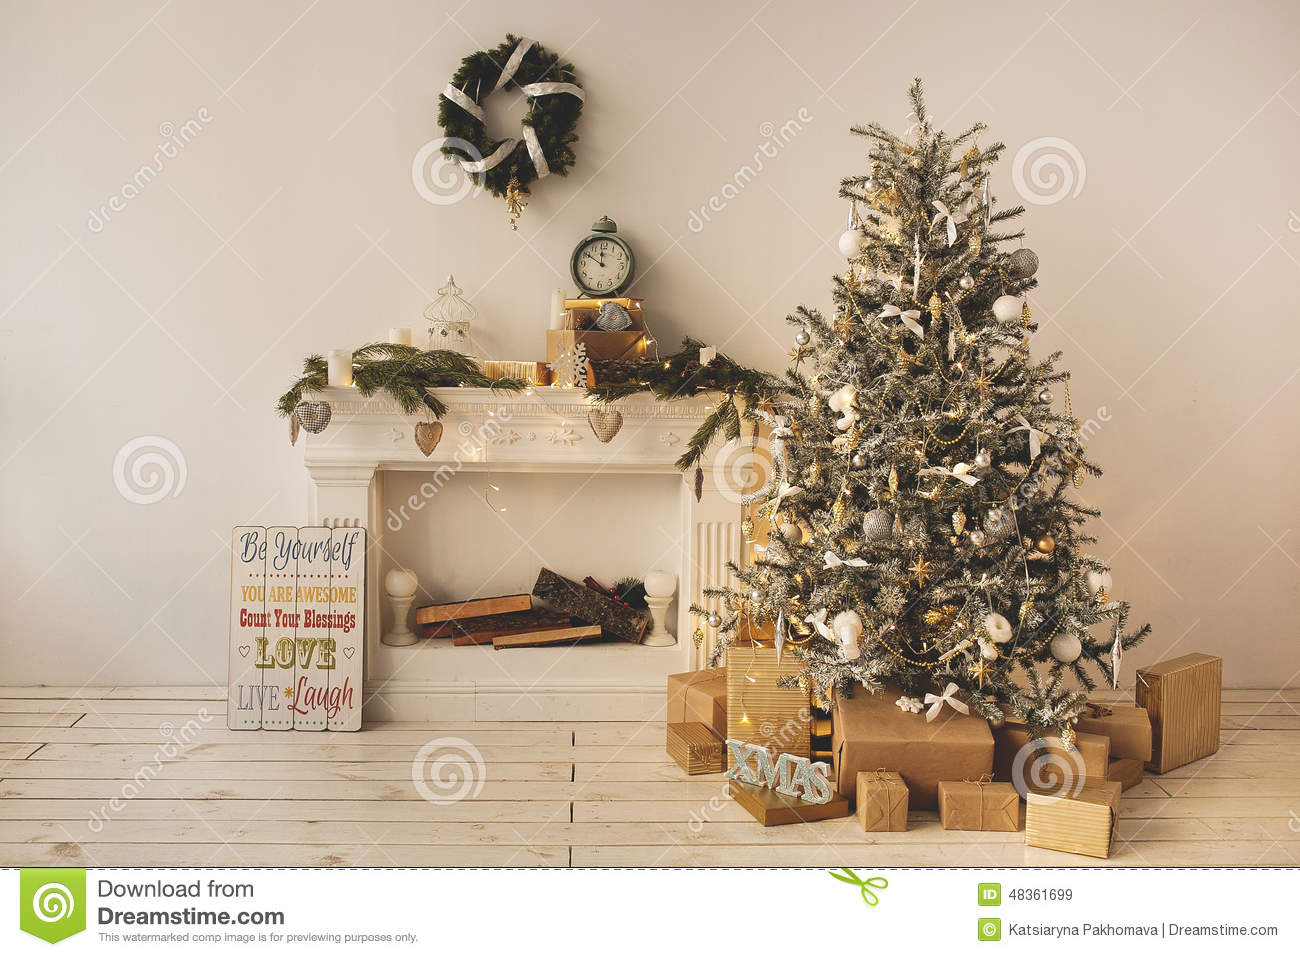 Beautiful holiday decorated room with Christmas tree with presents under it